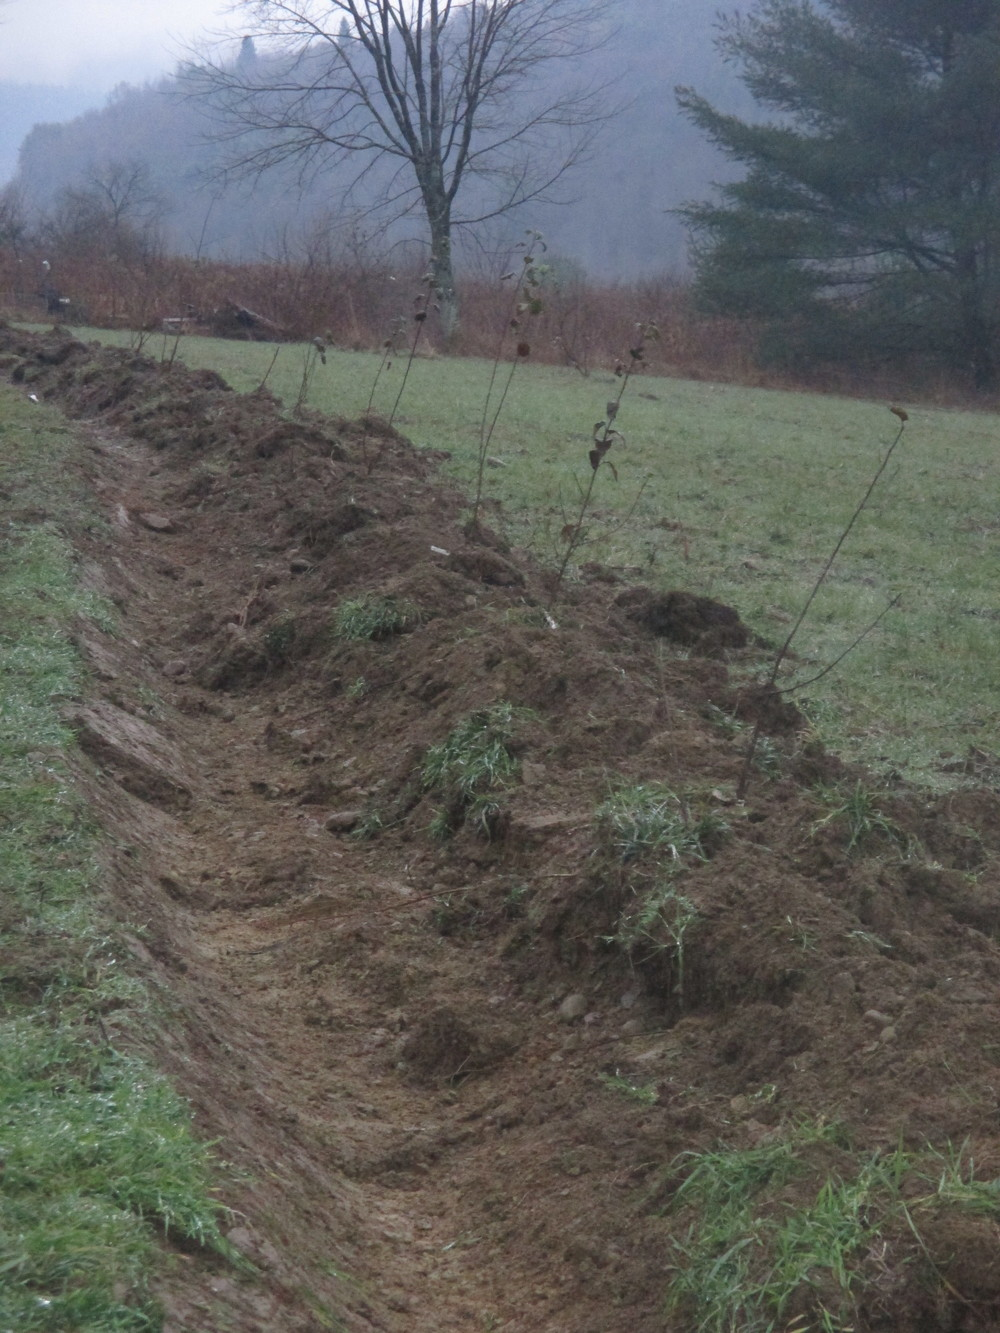 Fruit trees planted on a berm built along the contour of the hillside. Water can collect in front of the trees while the crown of the roots can spread into friable, well drained soil. This was dug with a front loader.